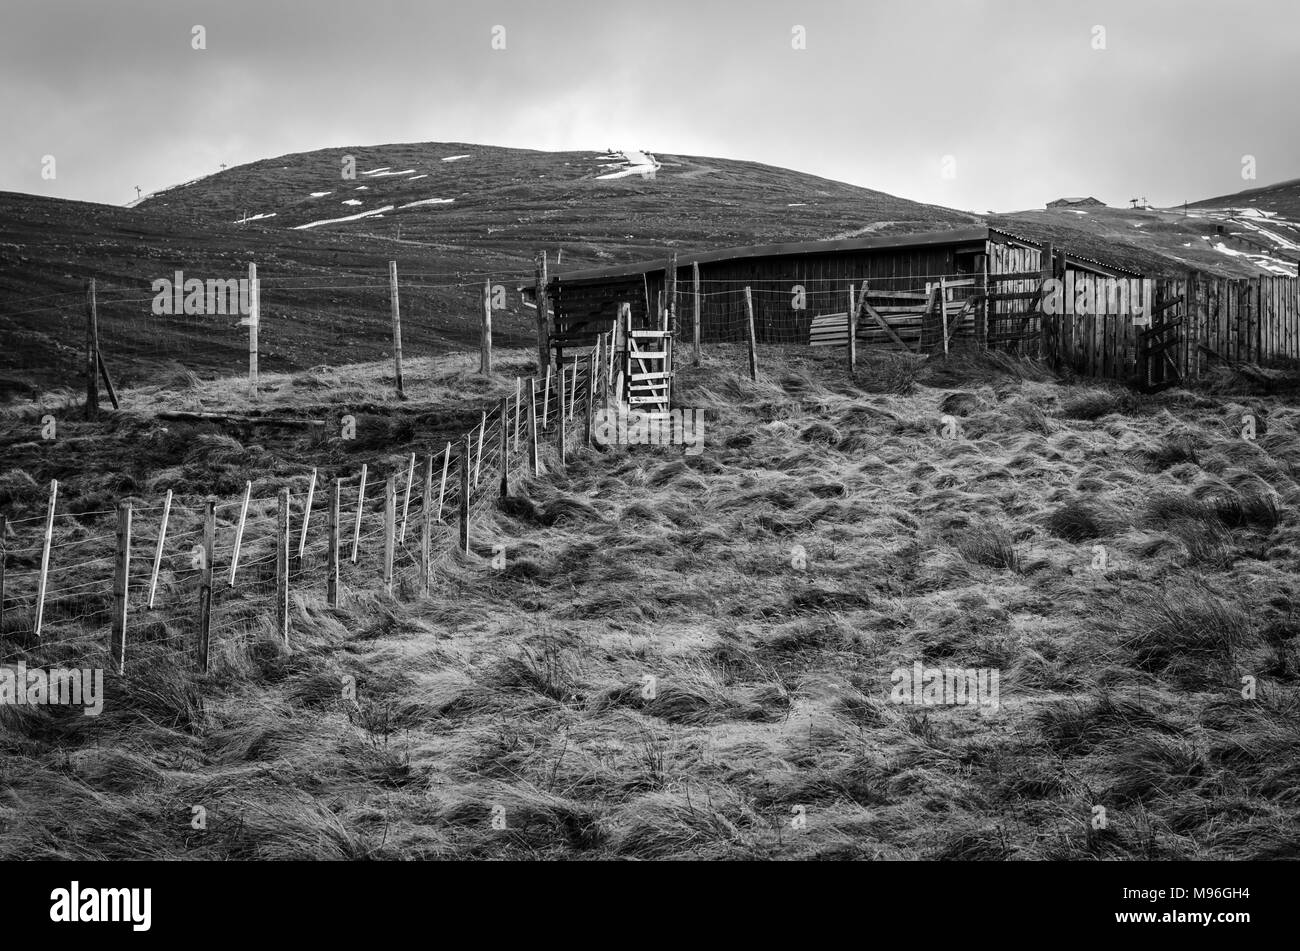 Reindeer Paddock and Shelter on the slopes of the Cairngorm Mountain in the Scottish Highlands - Stock Image